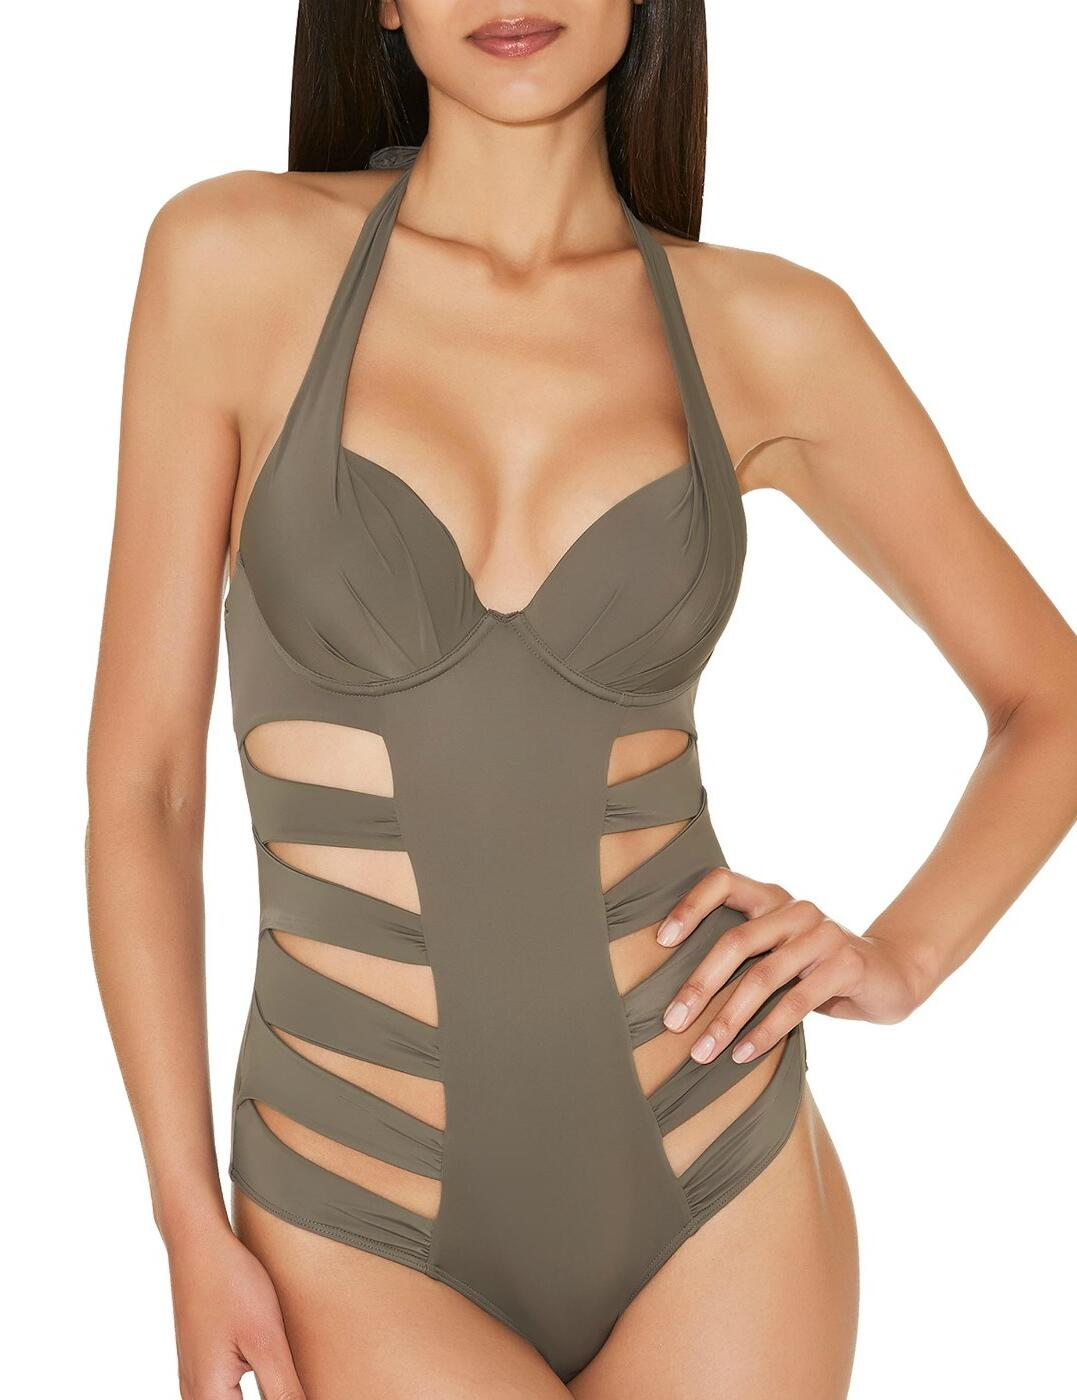 ET57 Aubade Sexy Chill One Piece Swimsuit - ET57 Palm